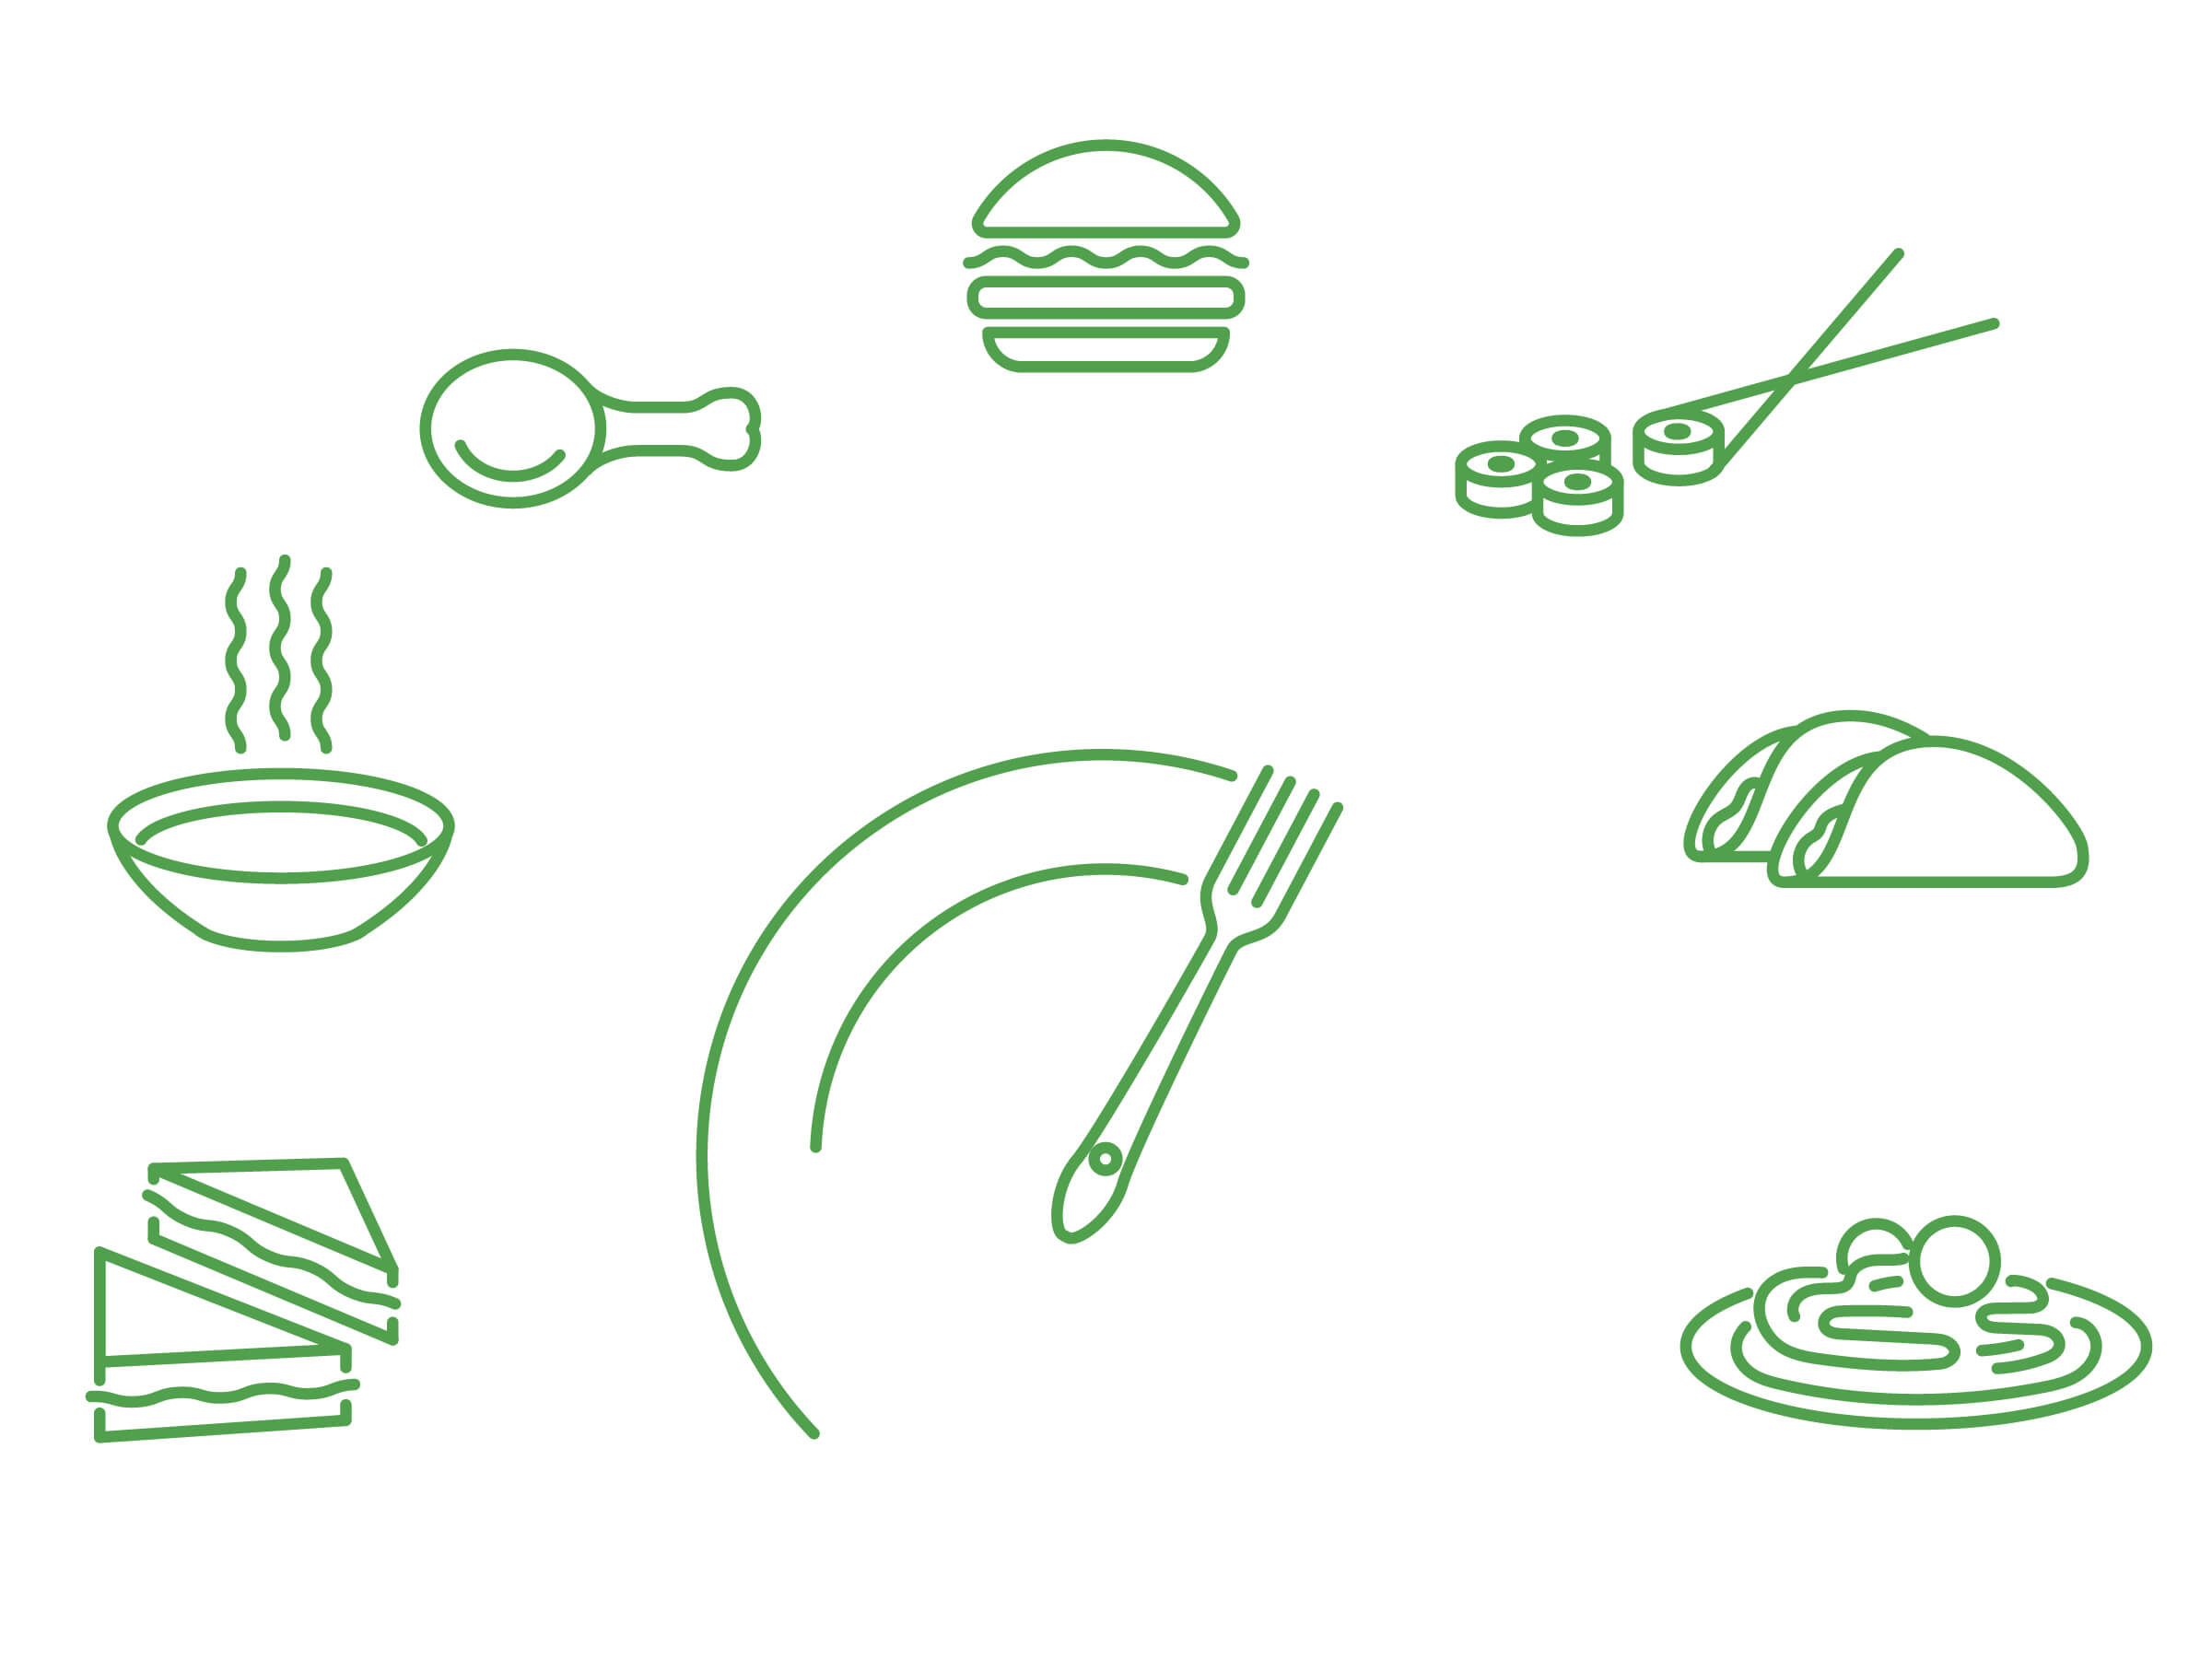 Illustration of food icons.